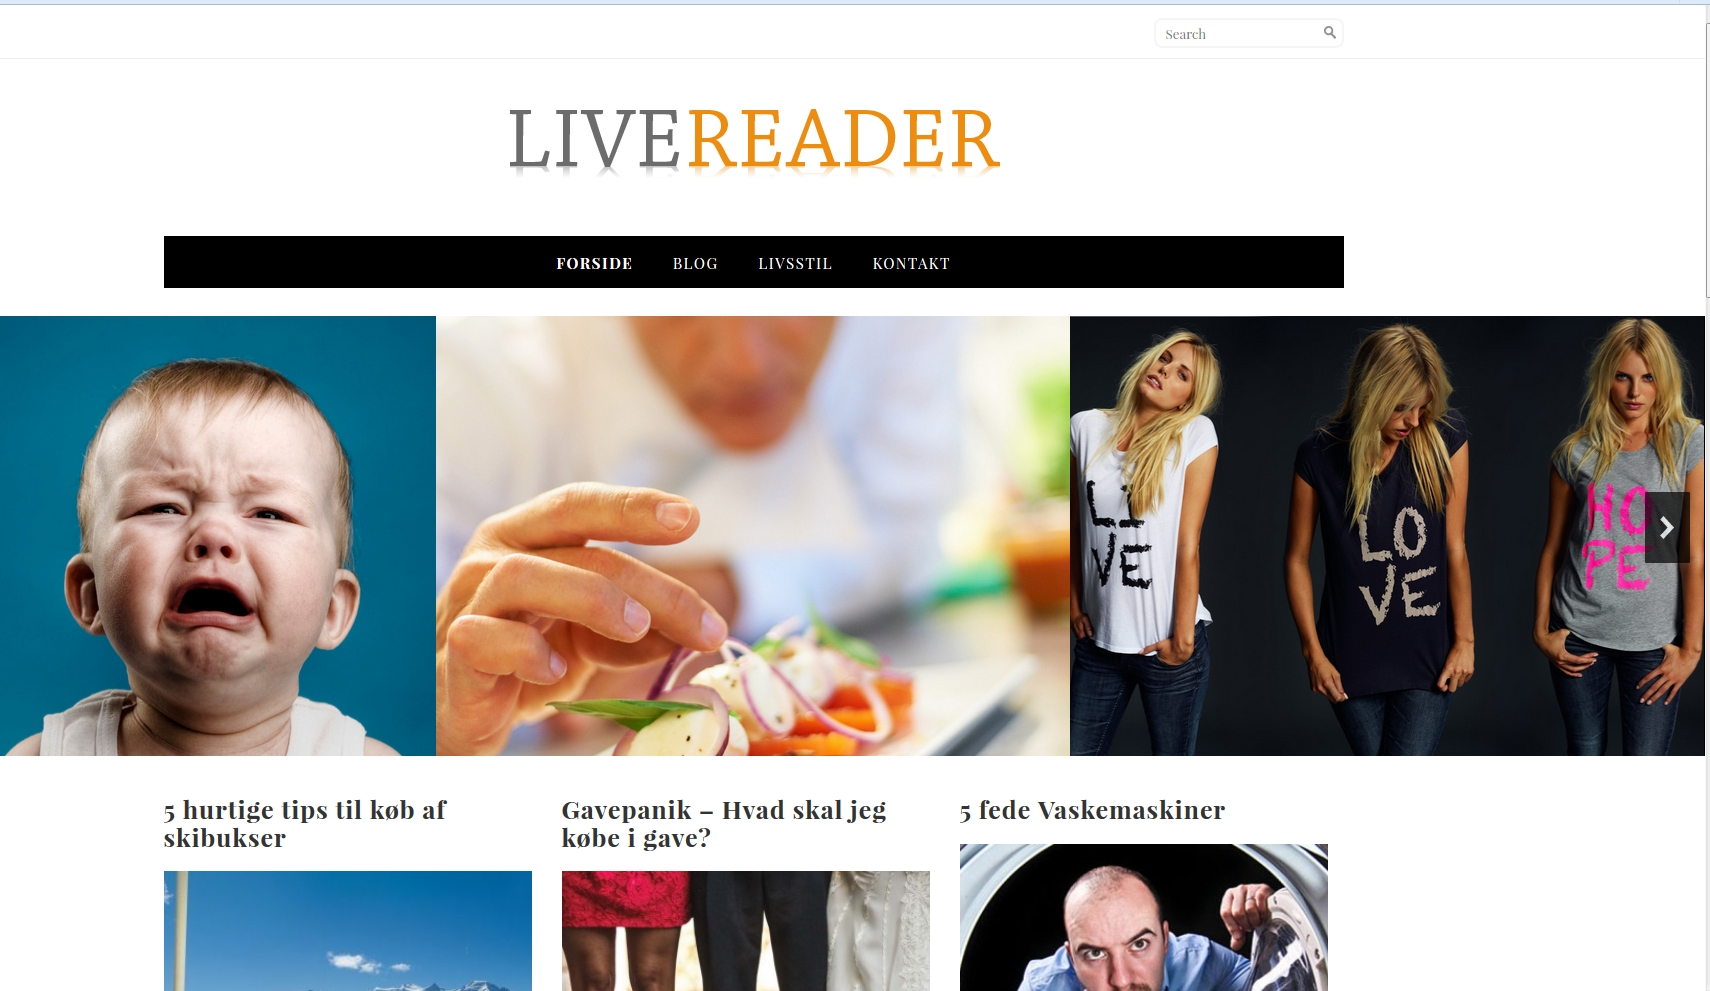 Detaljer : Livereader